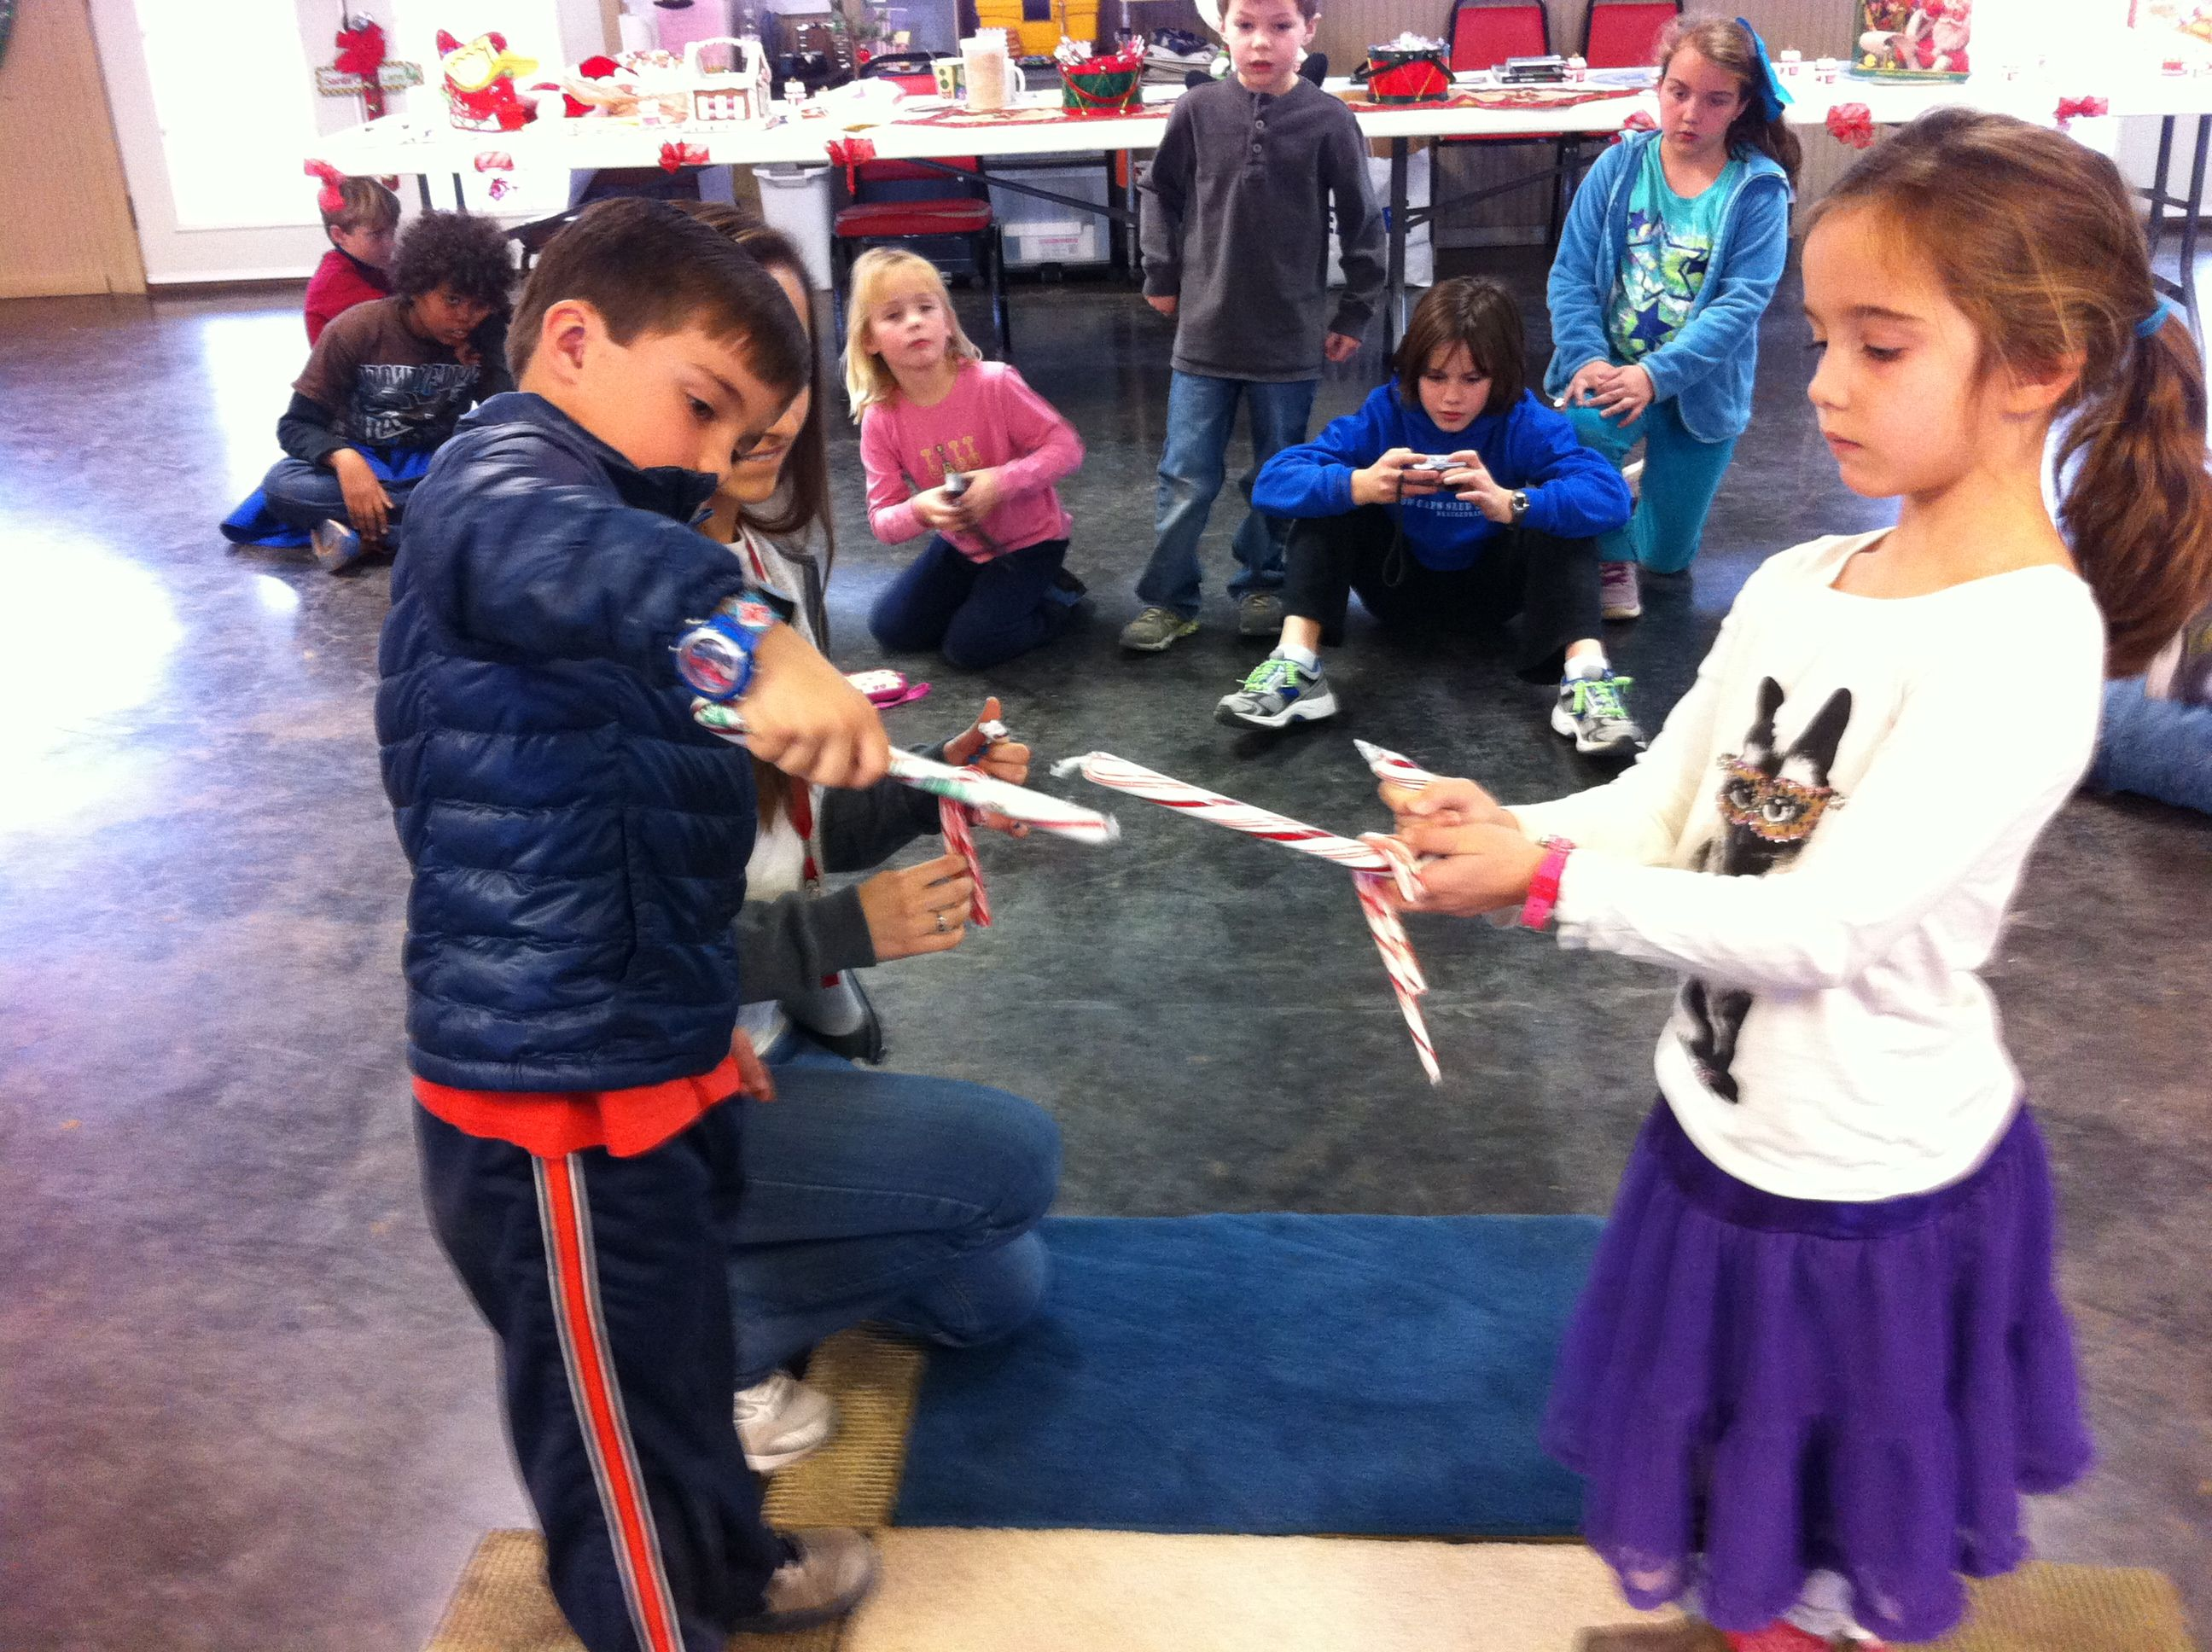 Candy Cane Pass Is A Fun Team Building Activity For Kids